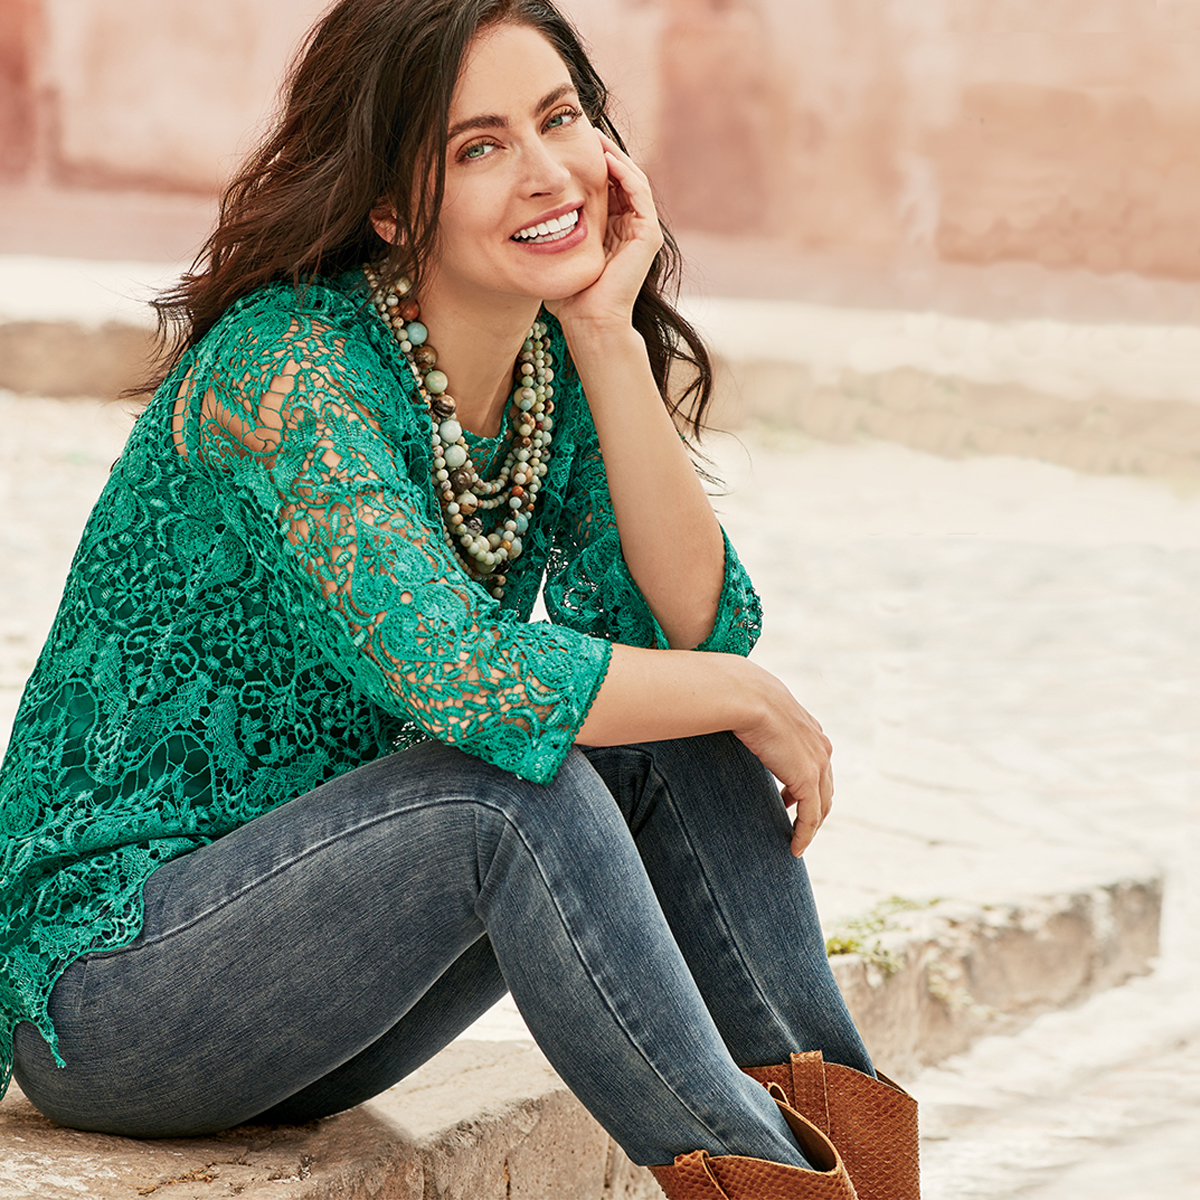 Woman in green shirt, jeans and tan boots, sitting.